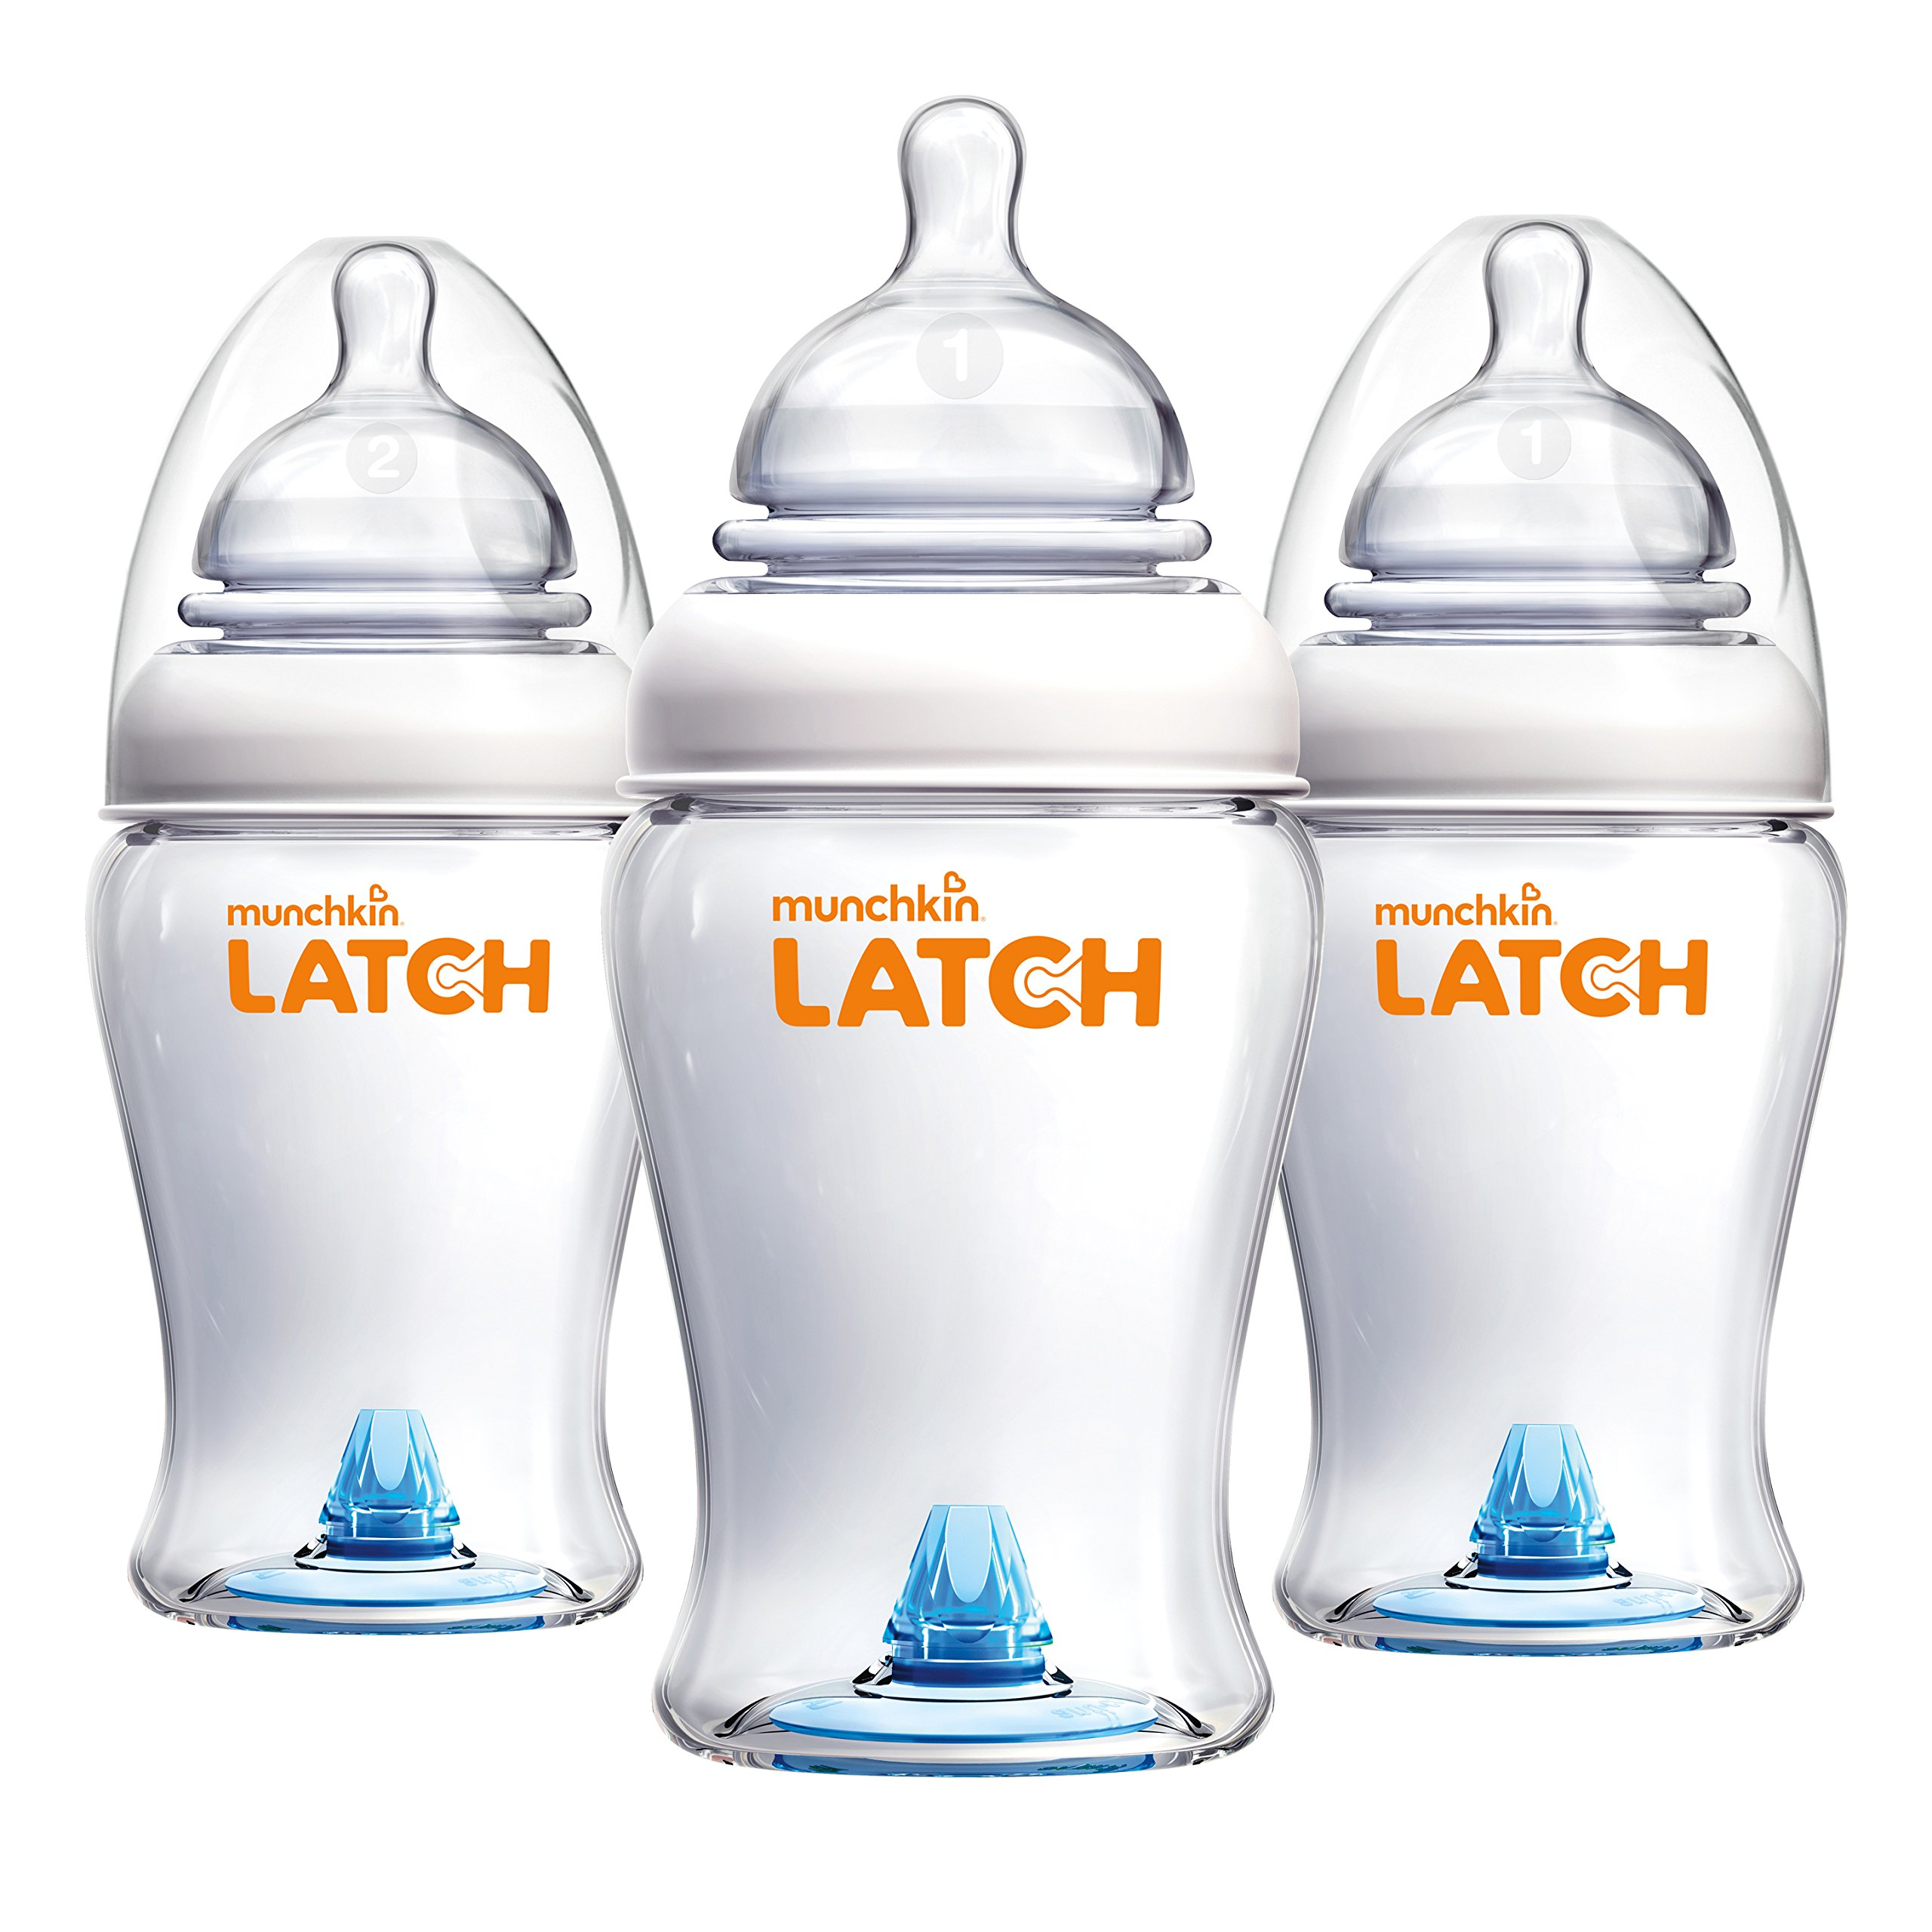 Munchkin Latch Anti-Colic Baby Bottle with Ultra Flexible Breast-like Nipple, BPA Free, 8 Ounce, 3 Pack by Munchkin